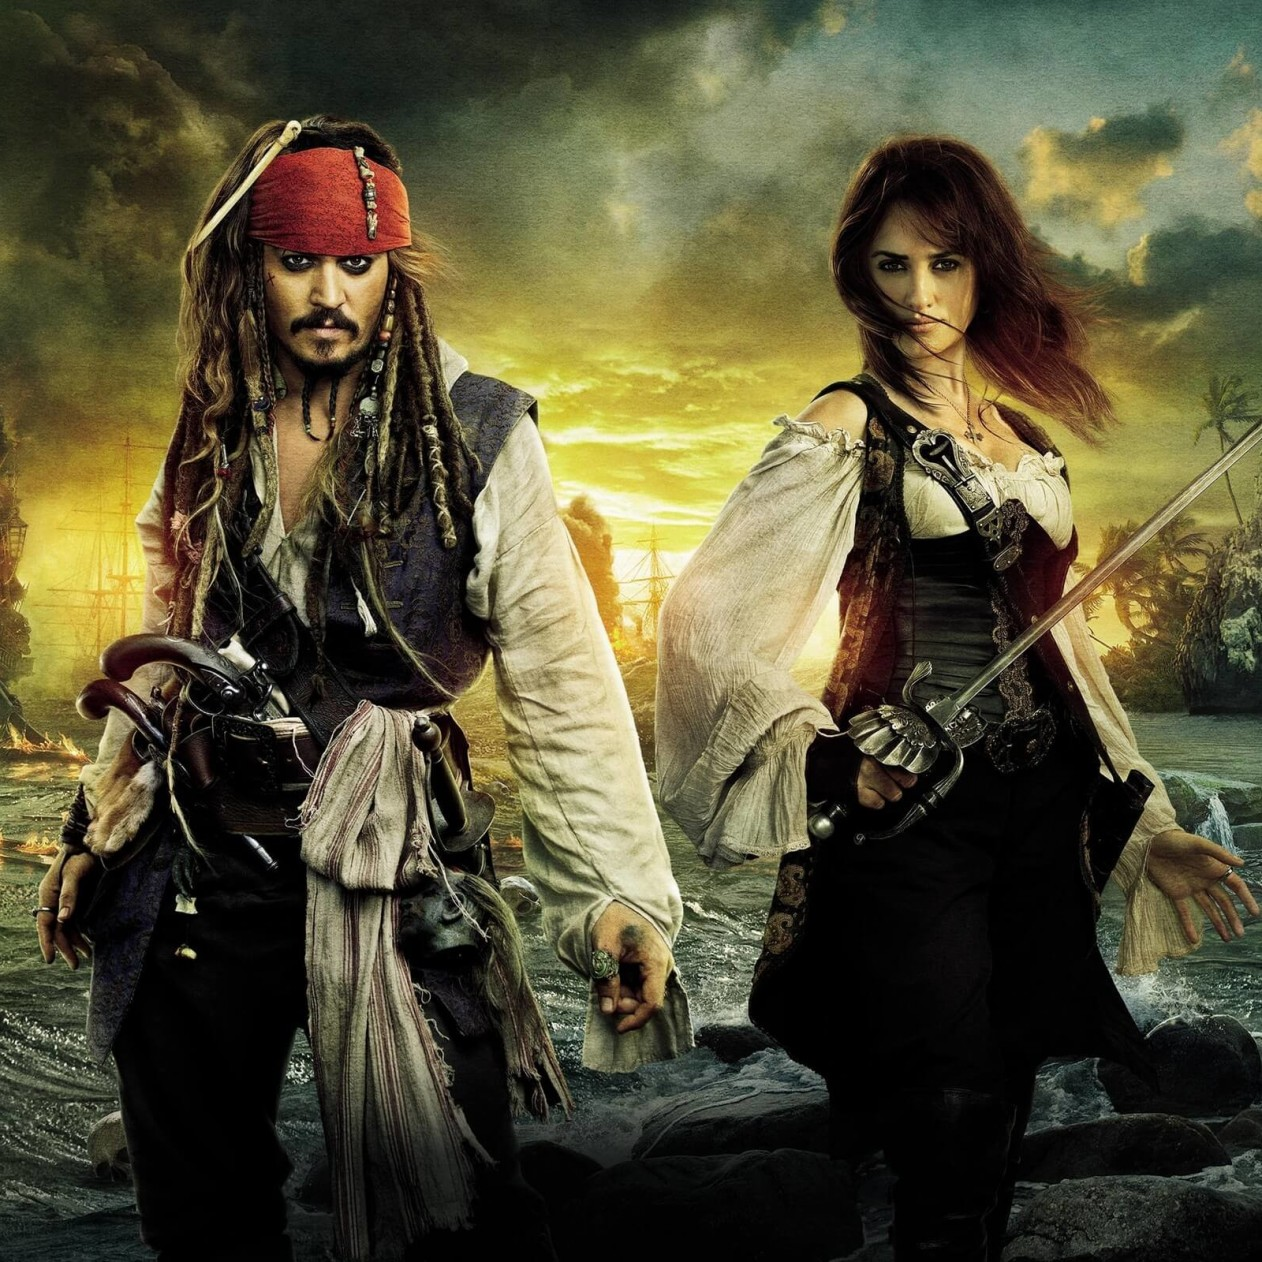 Pirates of the Caribbean: On Stranger Tides Characters Wallpaper for Apple iPad mini